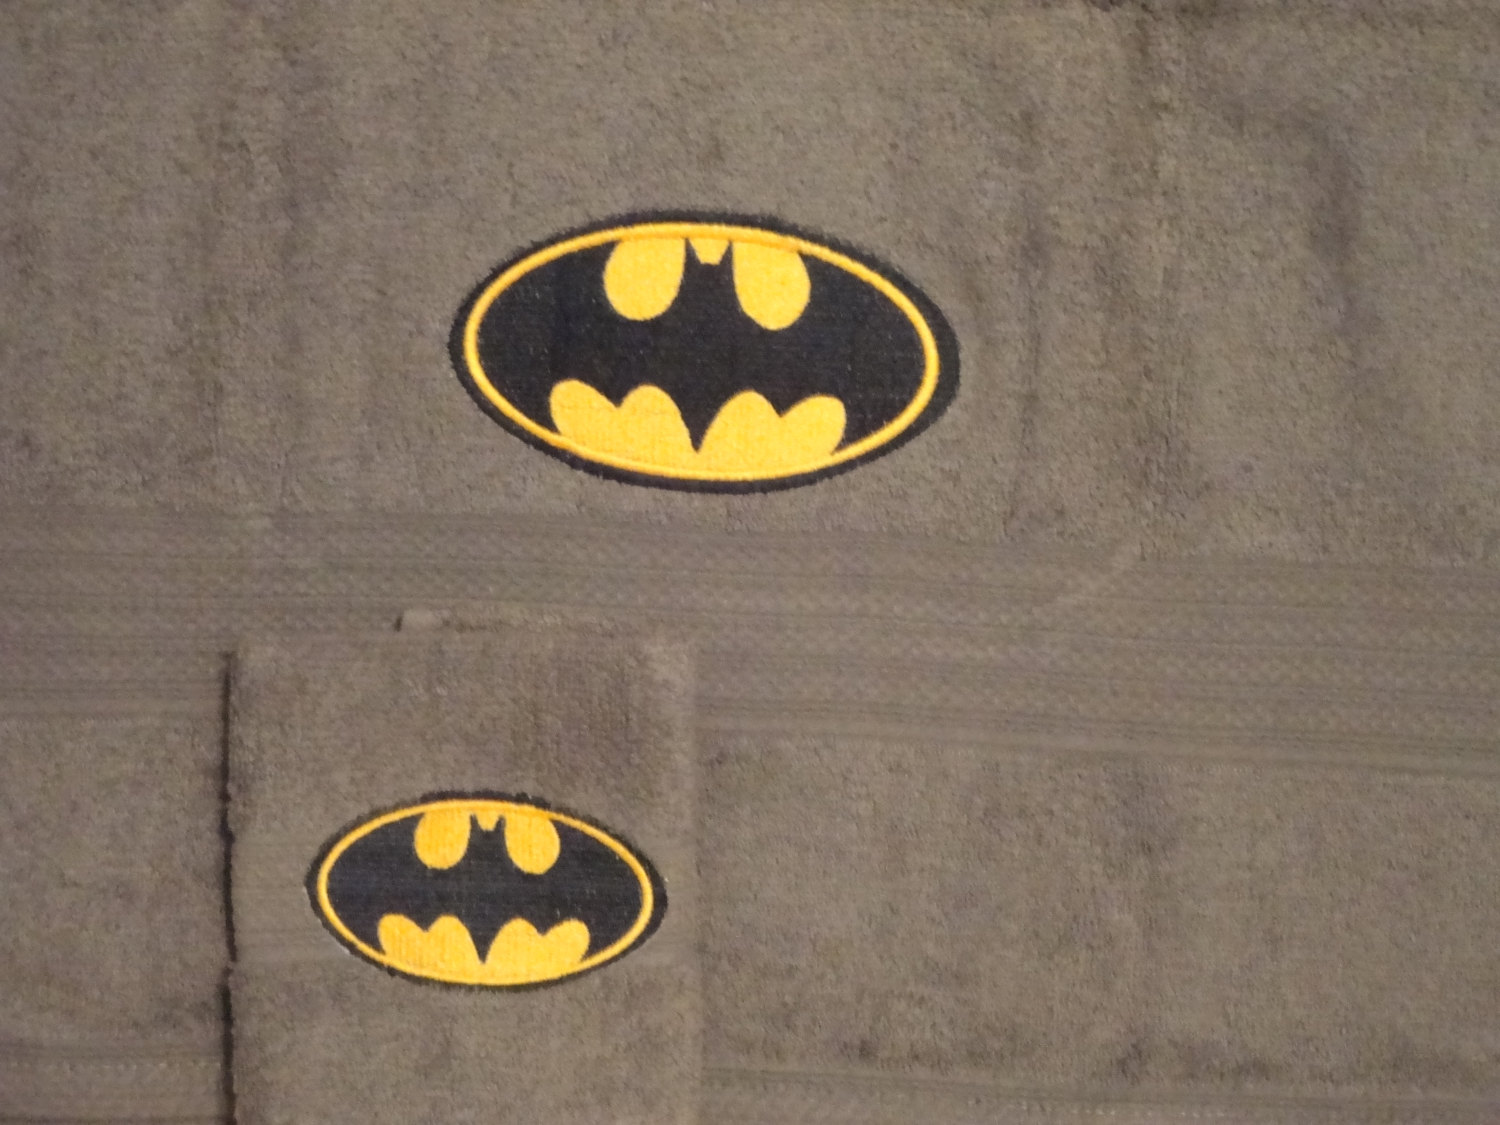 Batman logo design on towel17